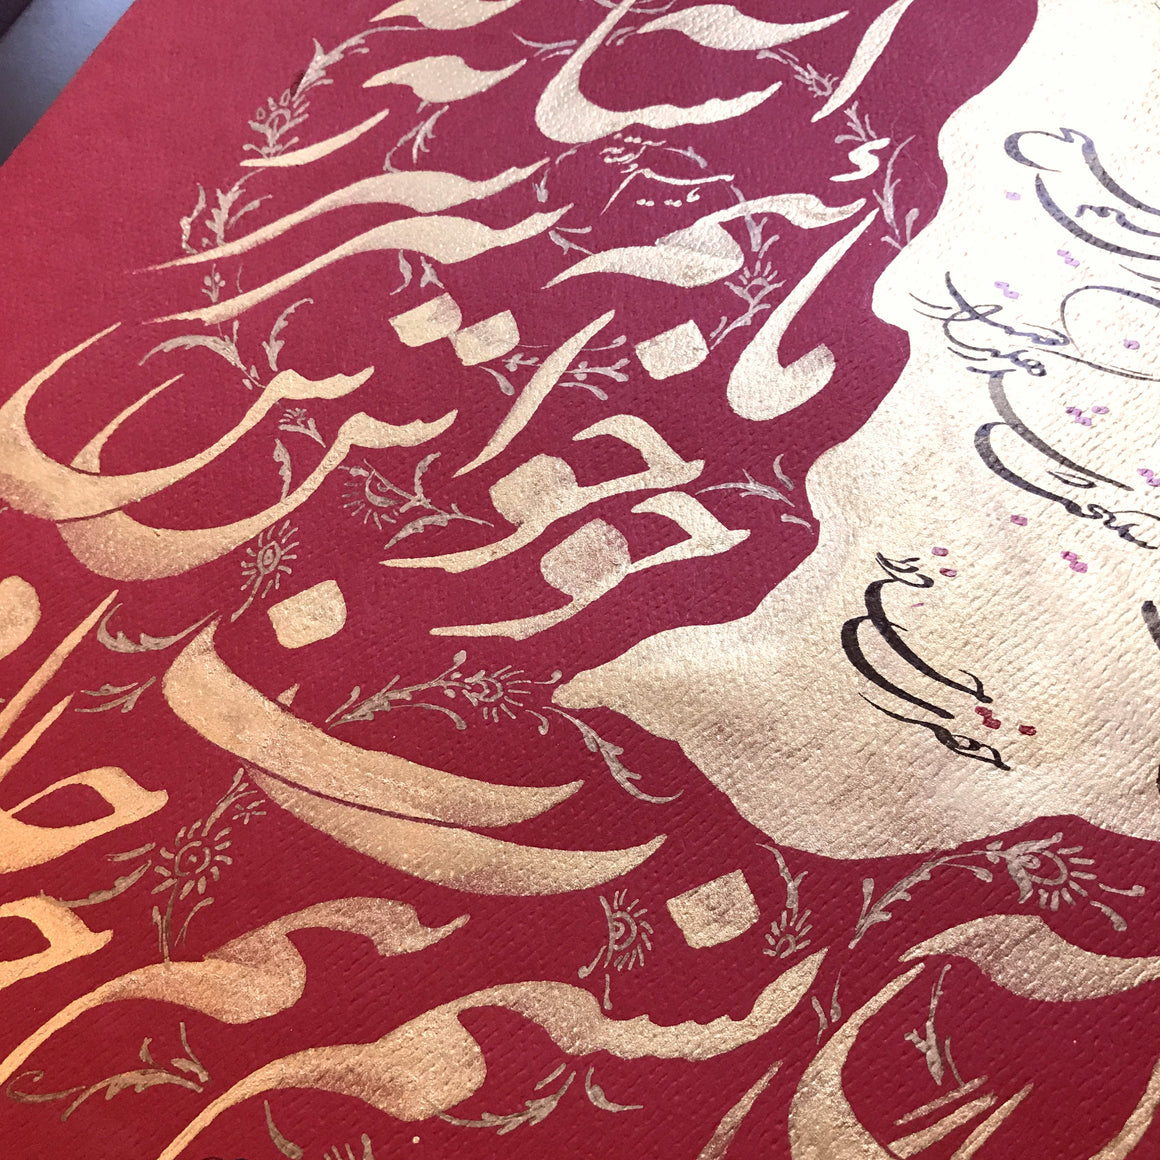 Astane Eshgh, Persian Calligraphy, Hafez Poem, Red and Gold